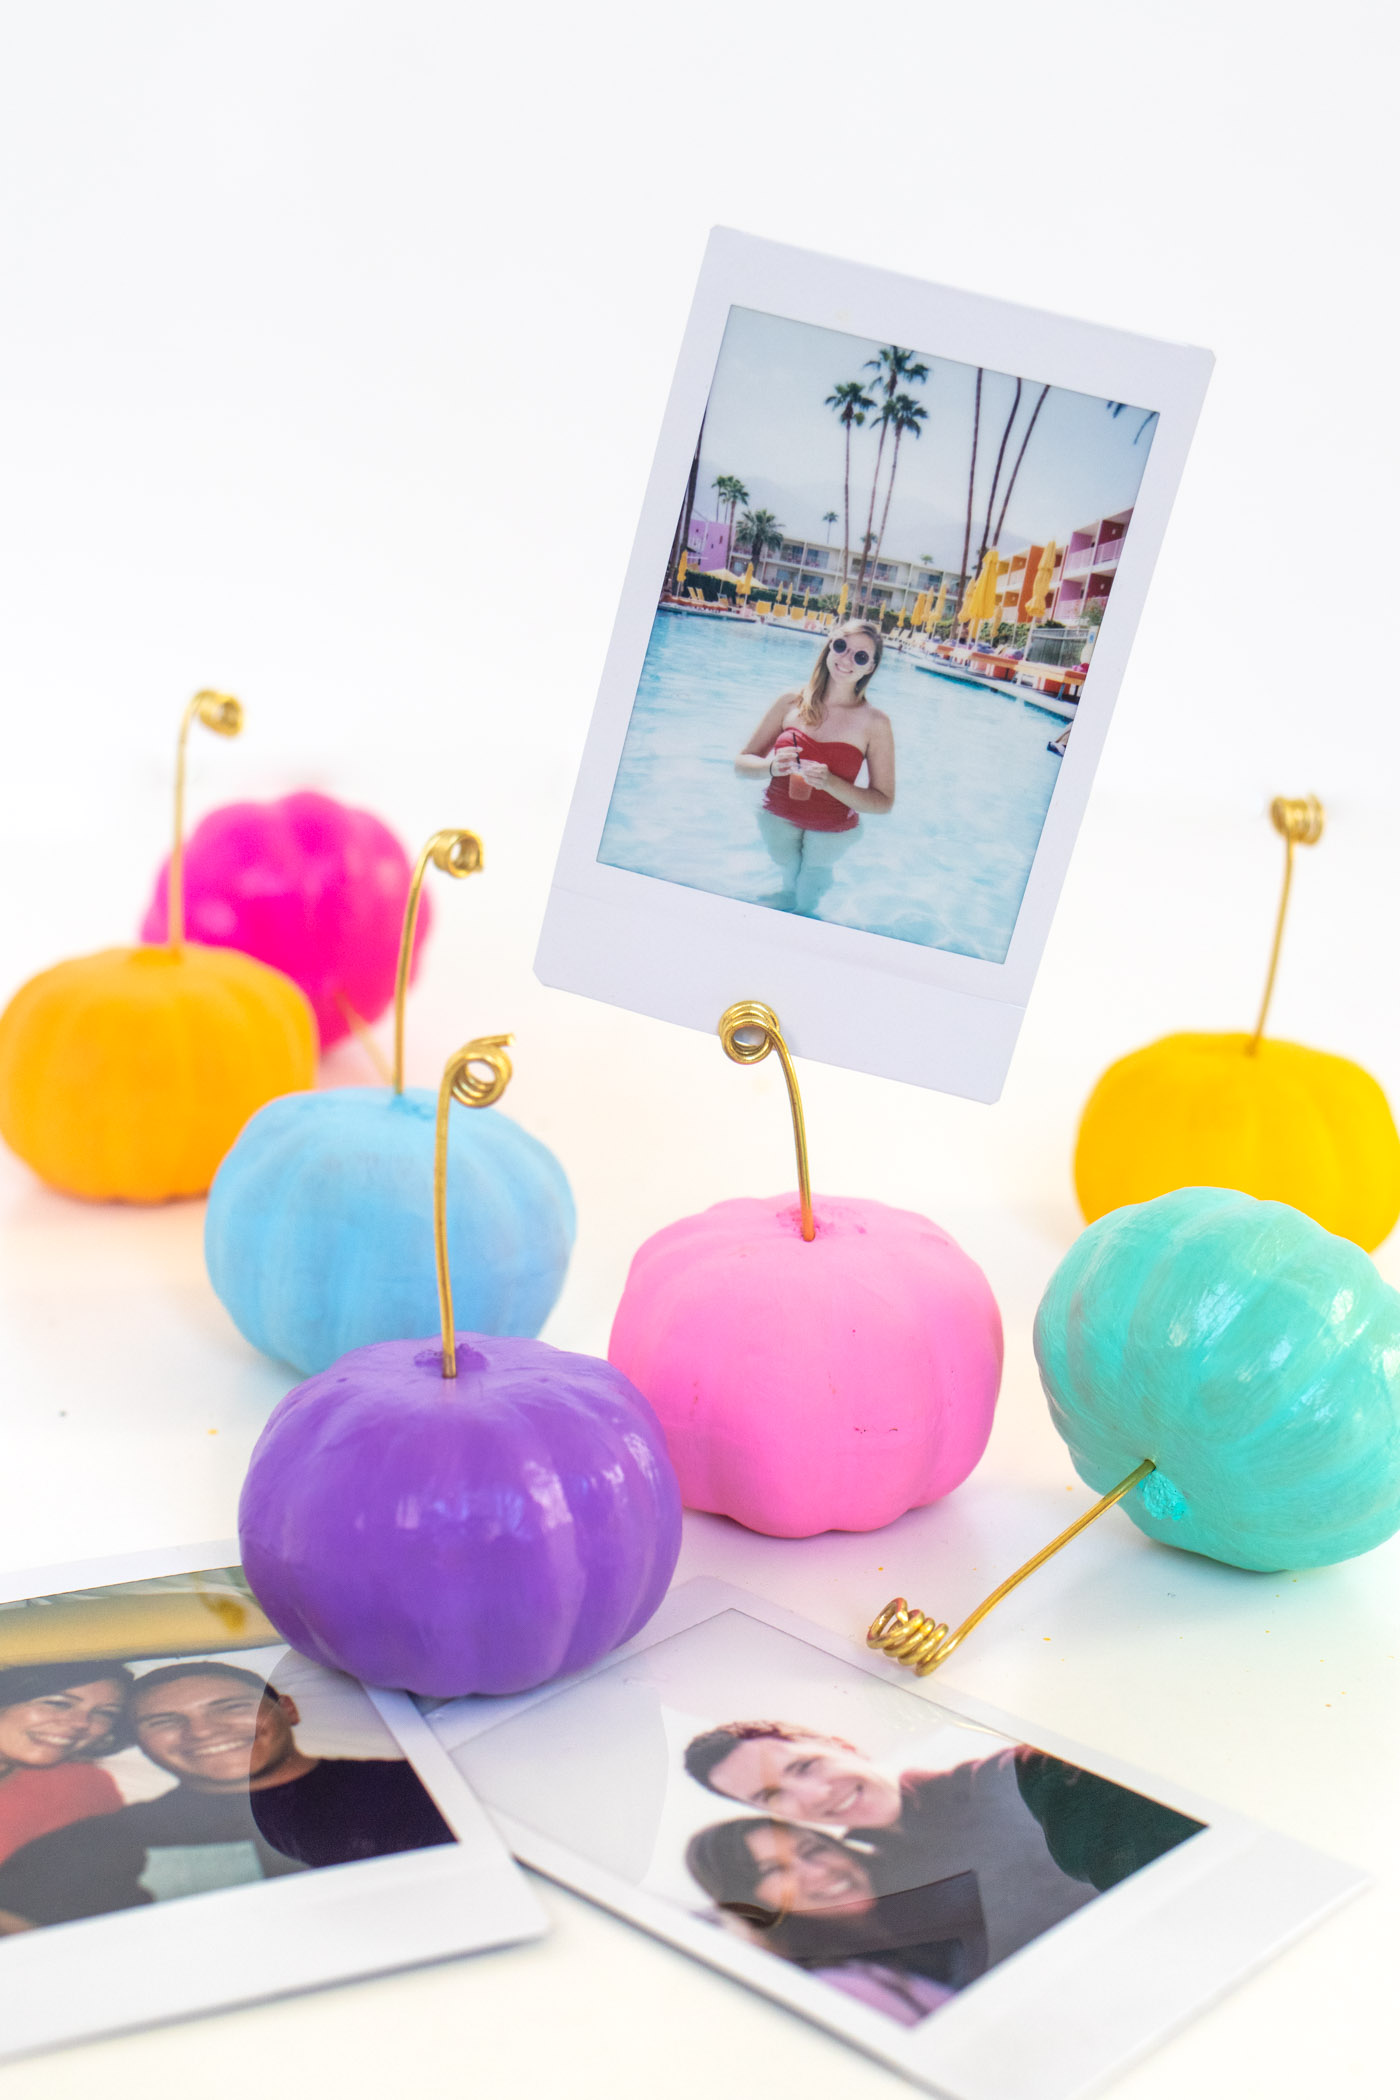 DIY Wire Pumpkin Photo Holders (Place Cards)| Paint mini pumpkins and add wire to create DIY place cards or mini photo holders to decorate for fall and Thanksgiving! #pumpkin #falldiy #falldecor #painting #photoholder #thanksgiving #tablescape #placesetting